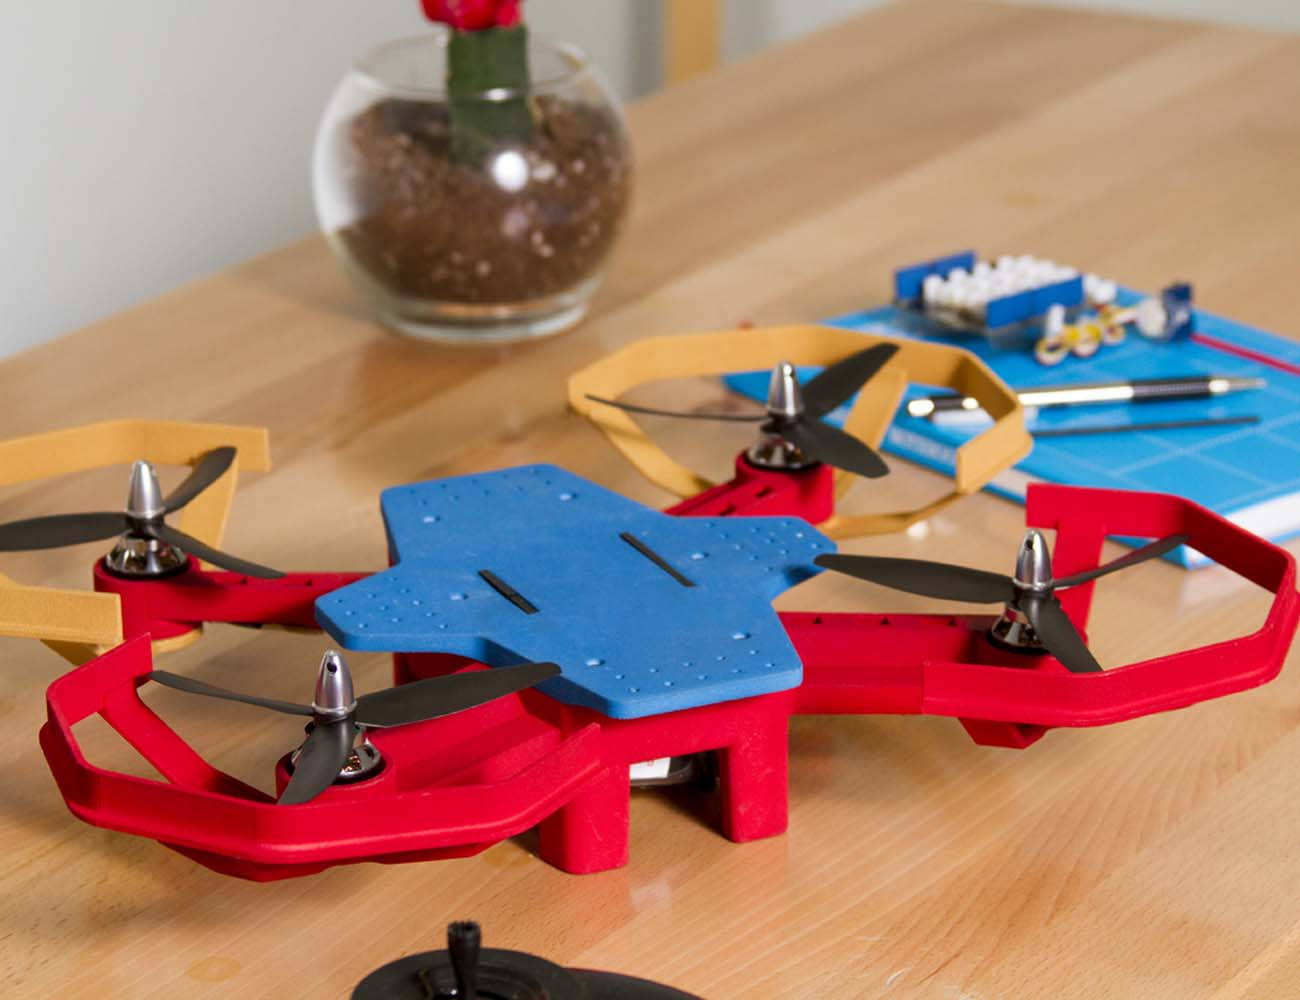 Eedu+%26%238211%3B+An+Easy+Drone+Kit+That+Teaches+You+Coding+And+Robotics